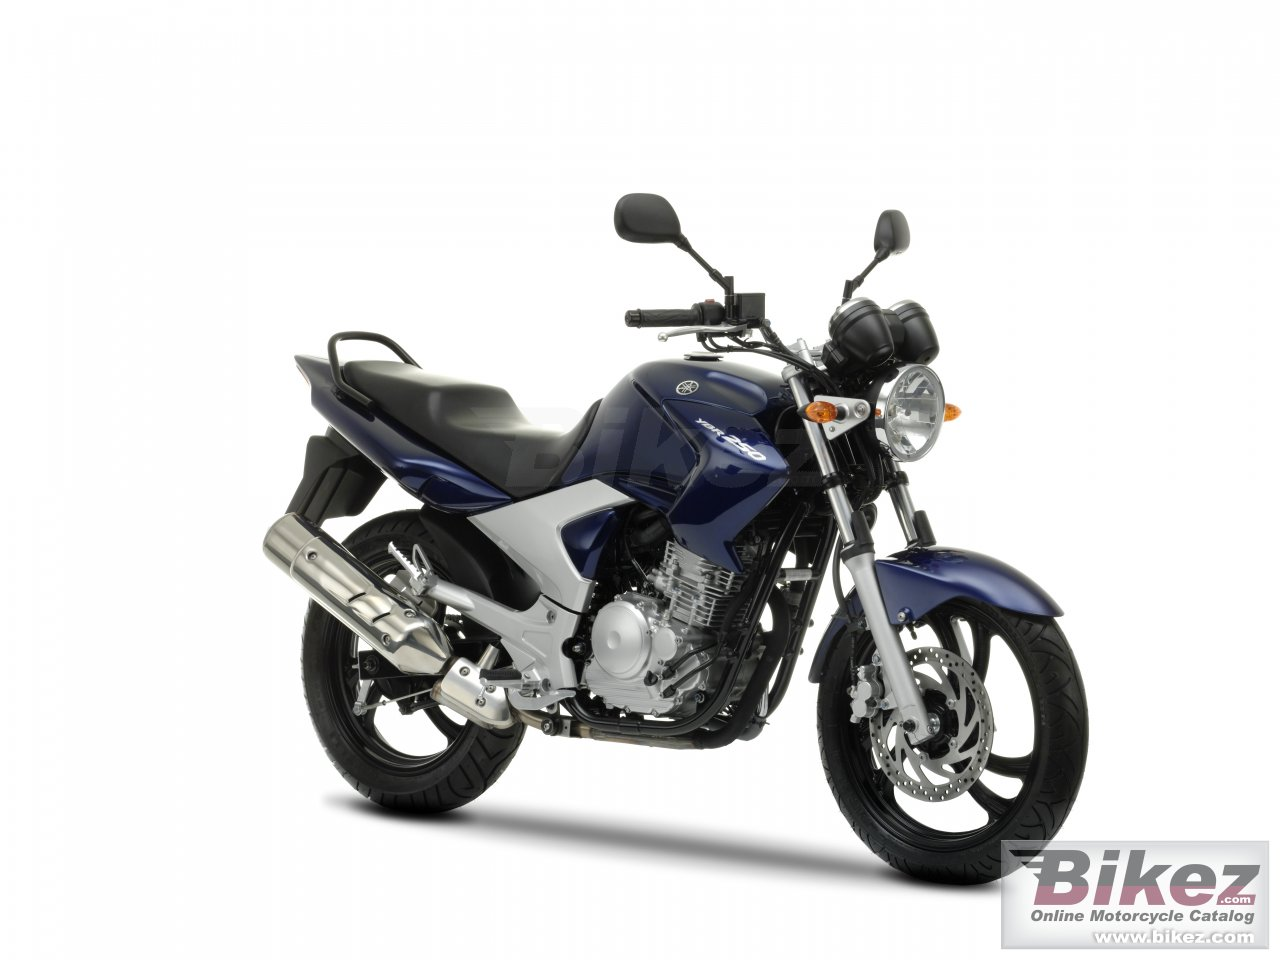 Big Yamaha ybr250 picture and wallpaper from Bikez.com